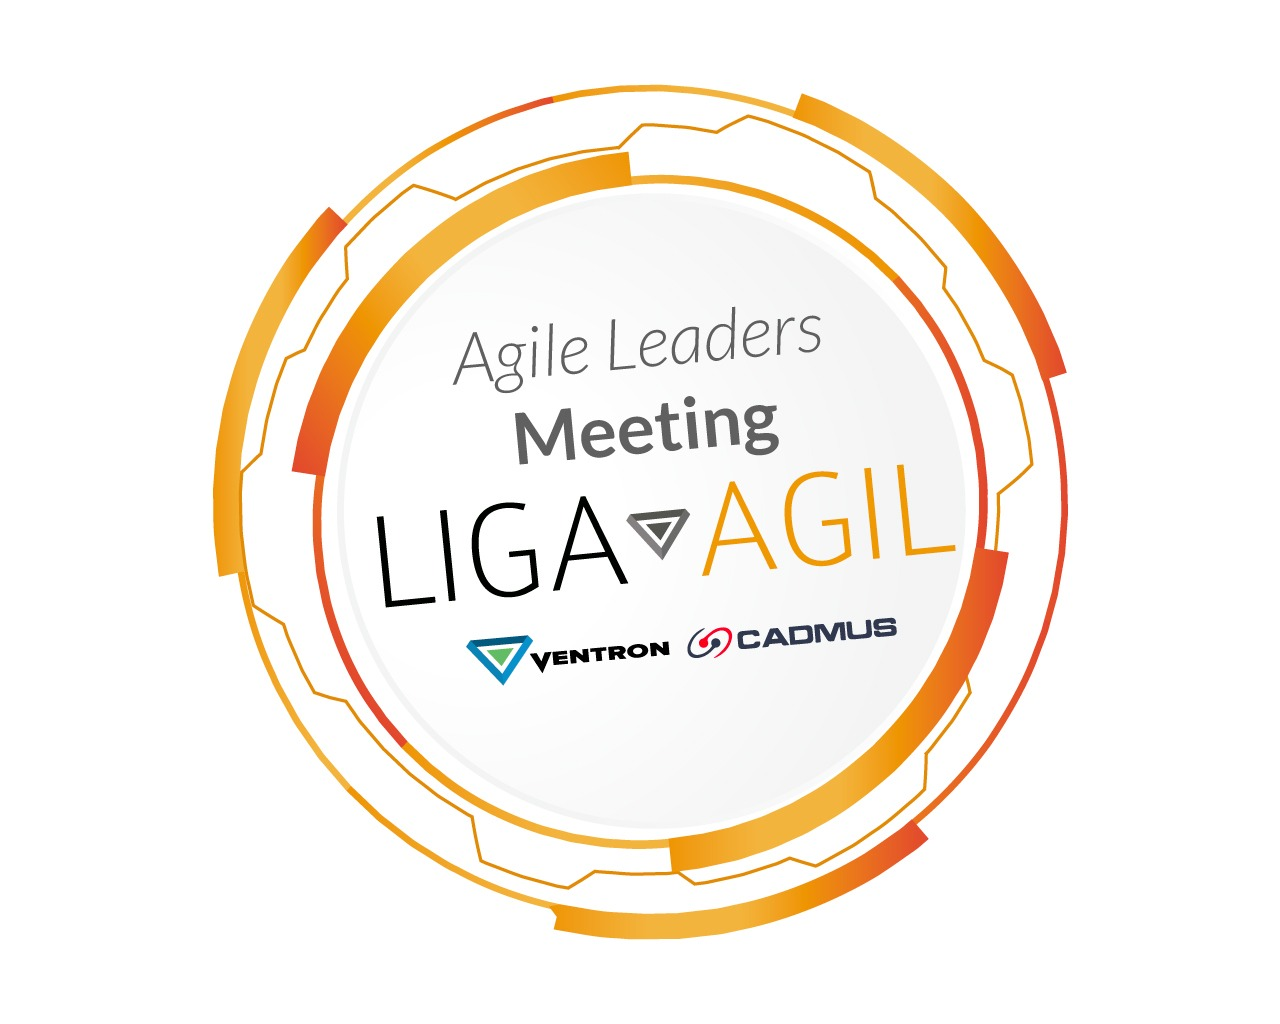 Agile Leaders Meeting 2019